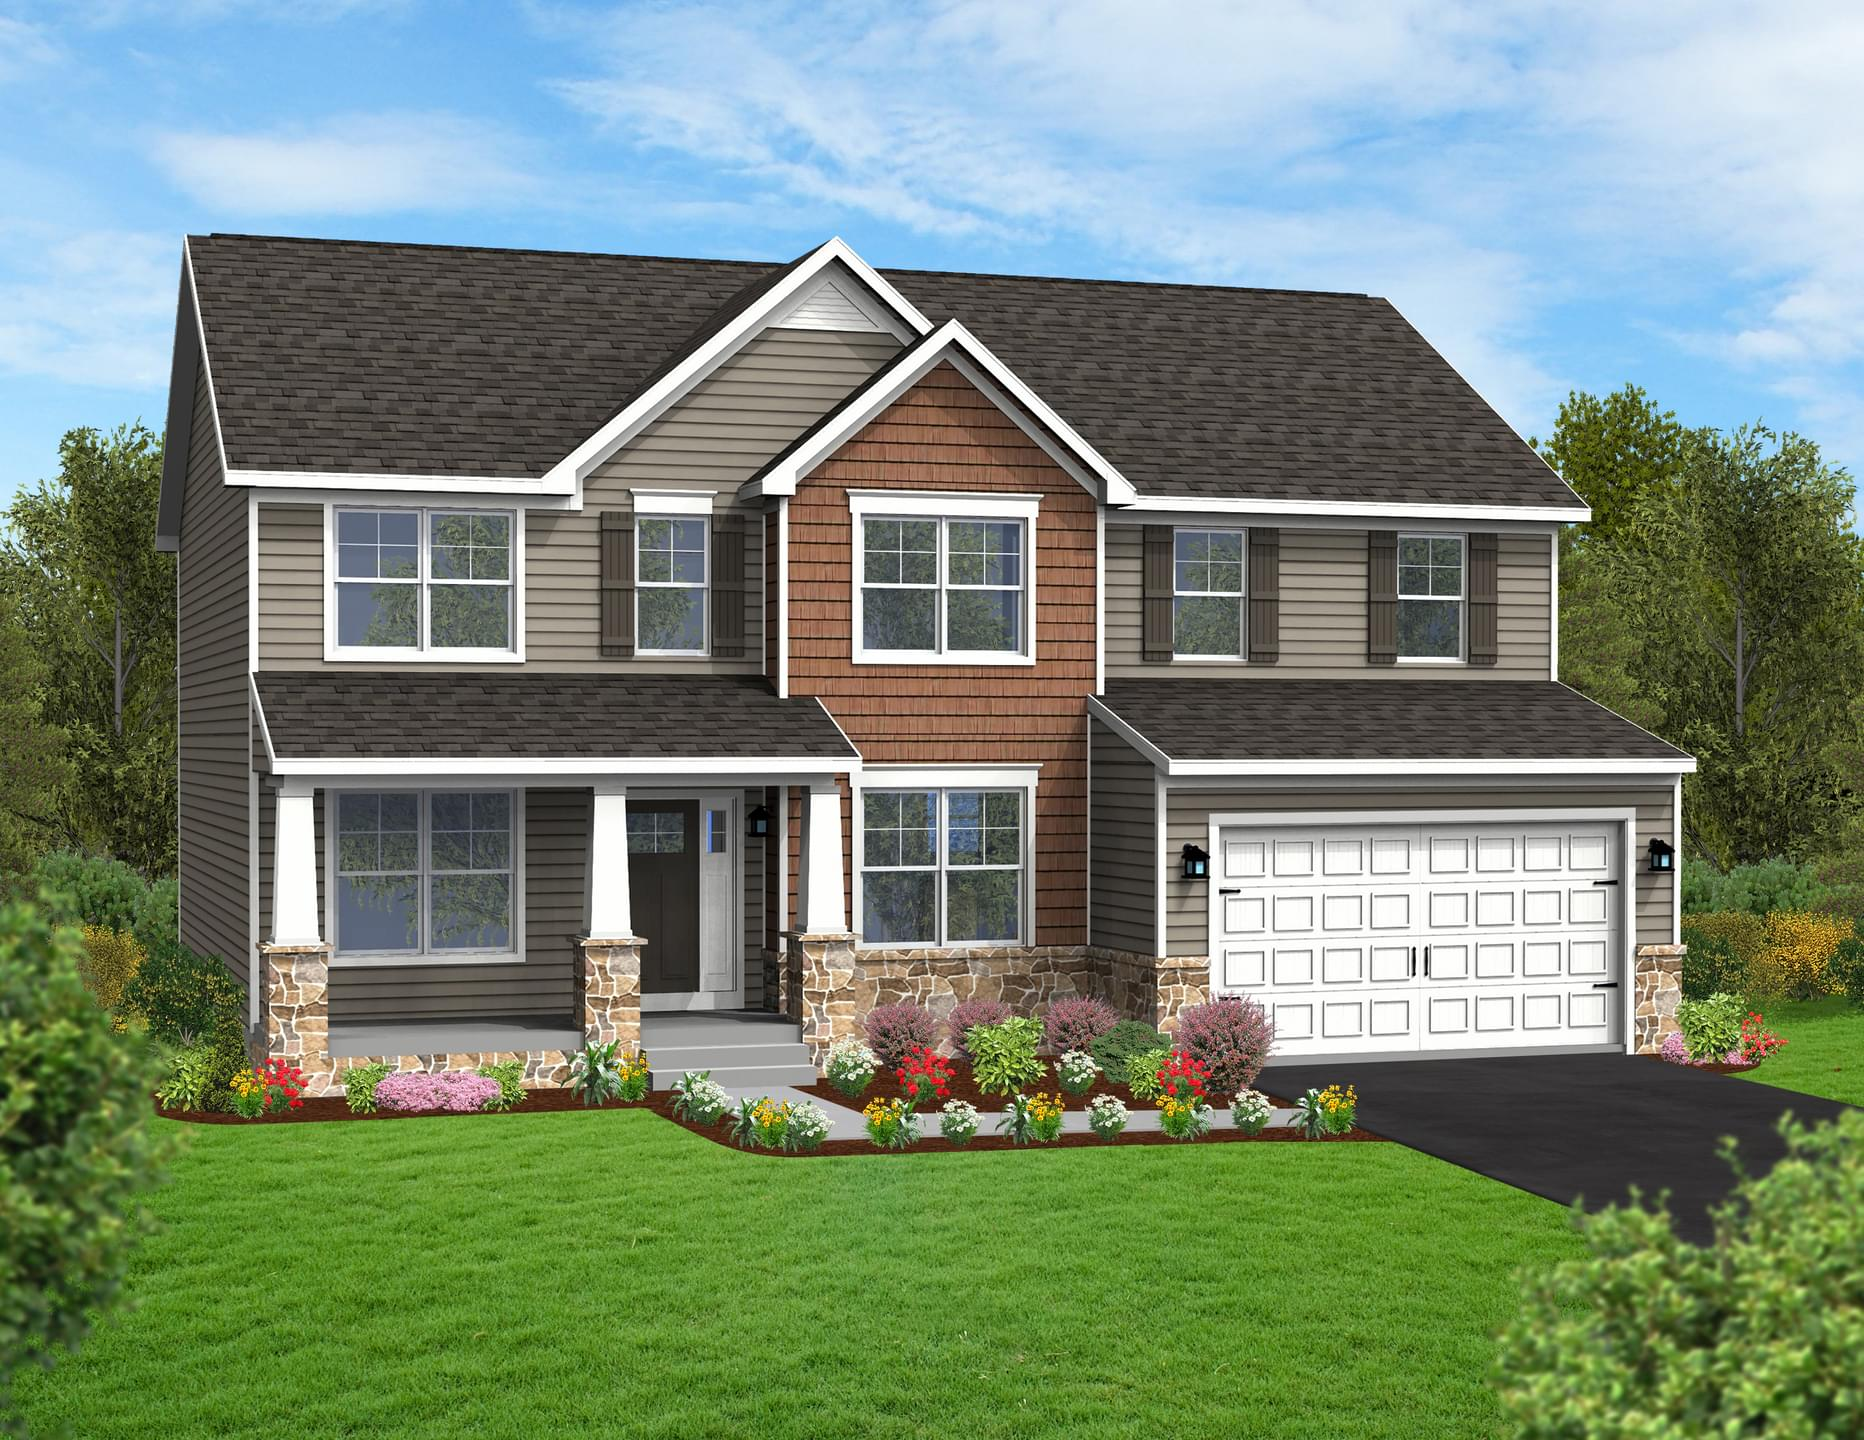 Berks Homes Elevation Image Beacon Pointe